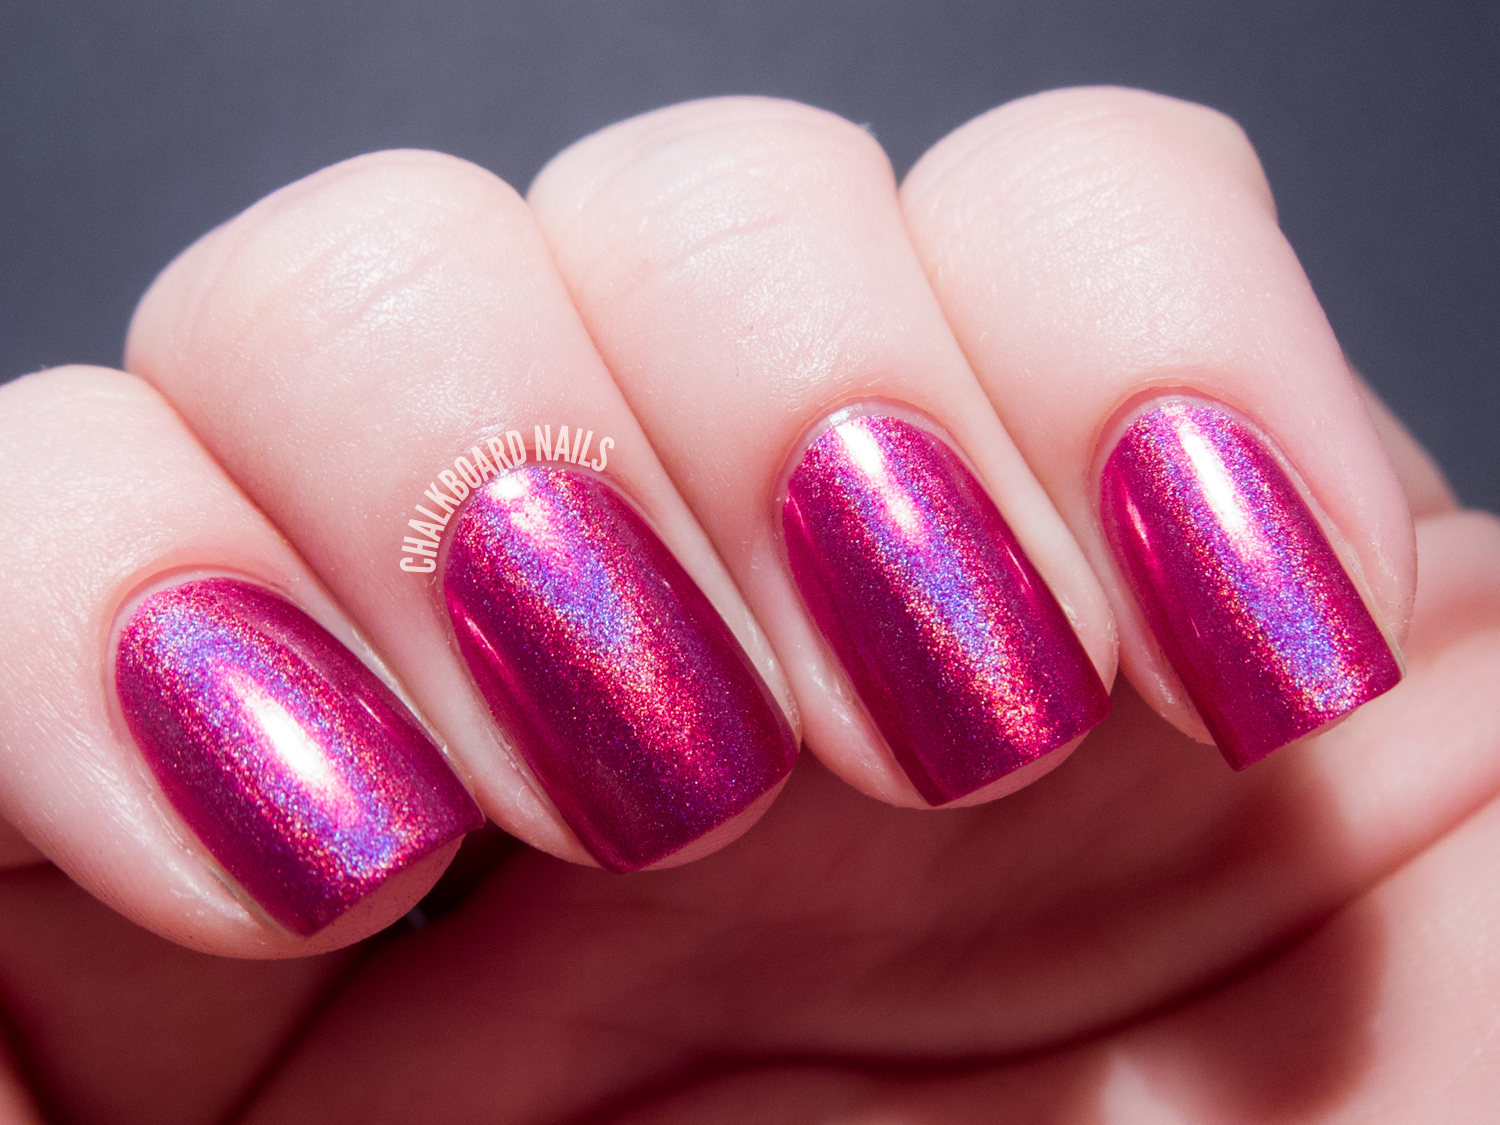 China Glaze Hologlam Collection Infra-Red nail polish